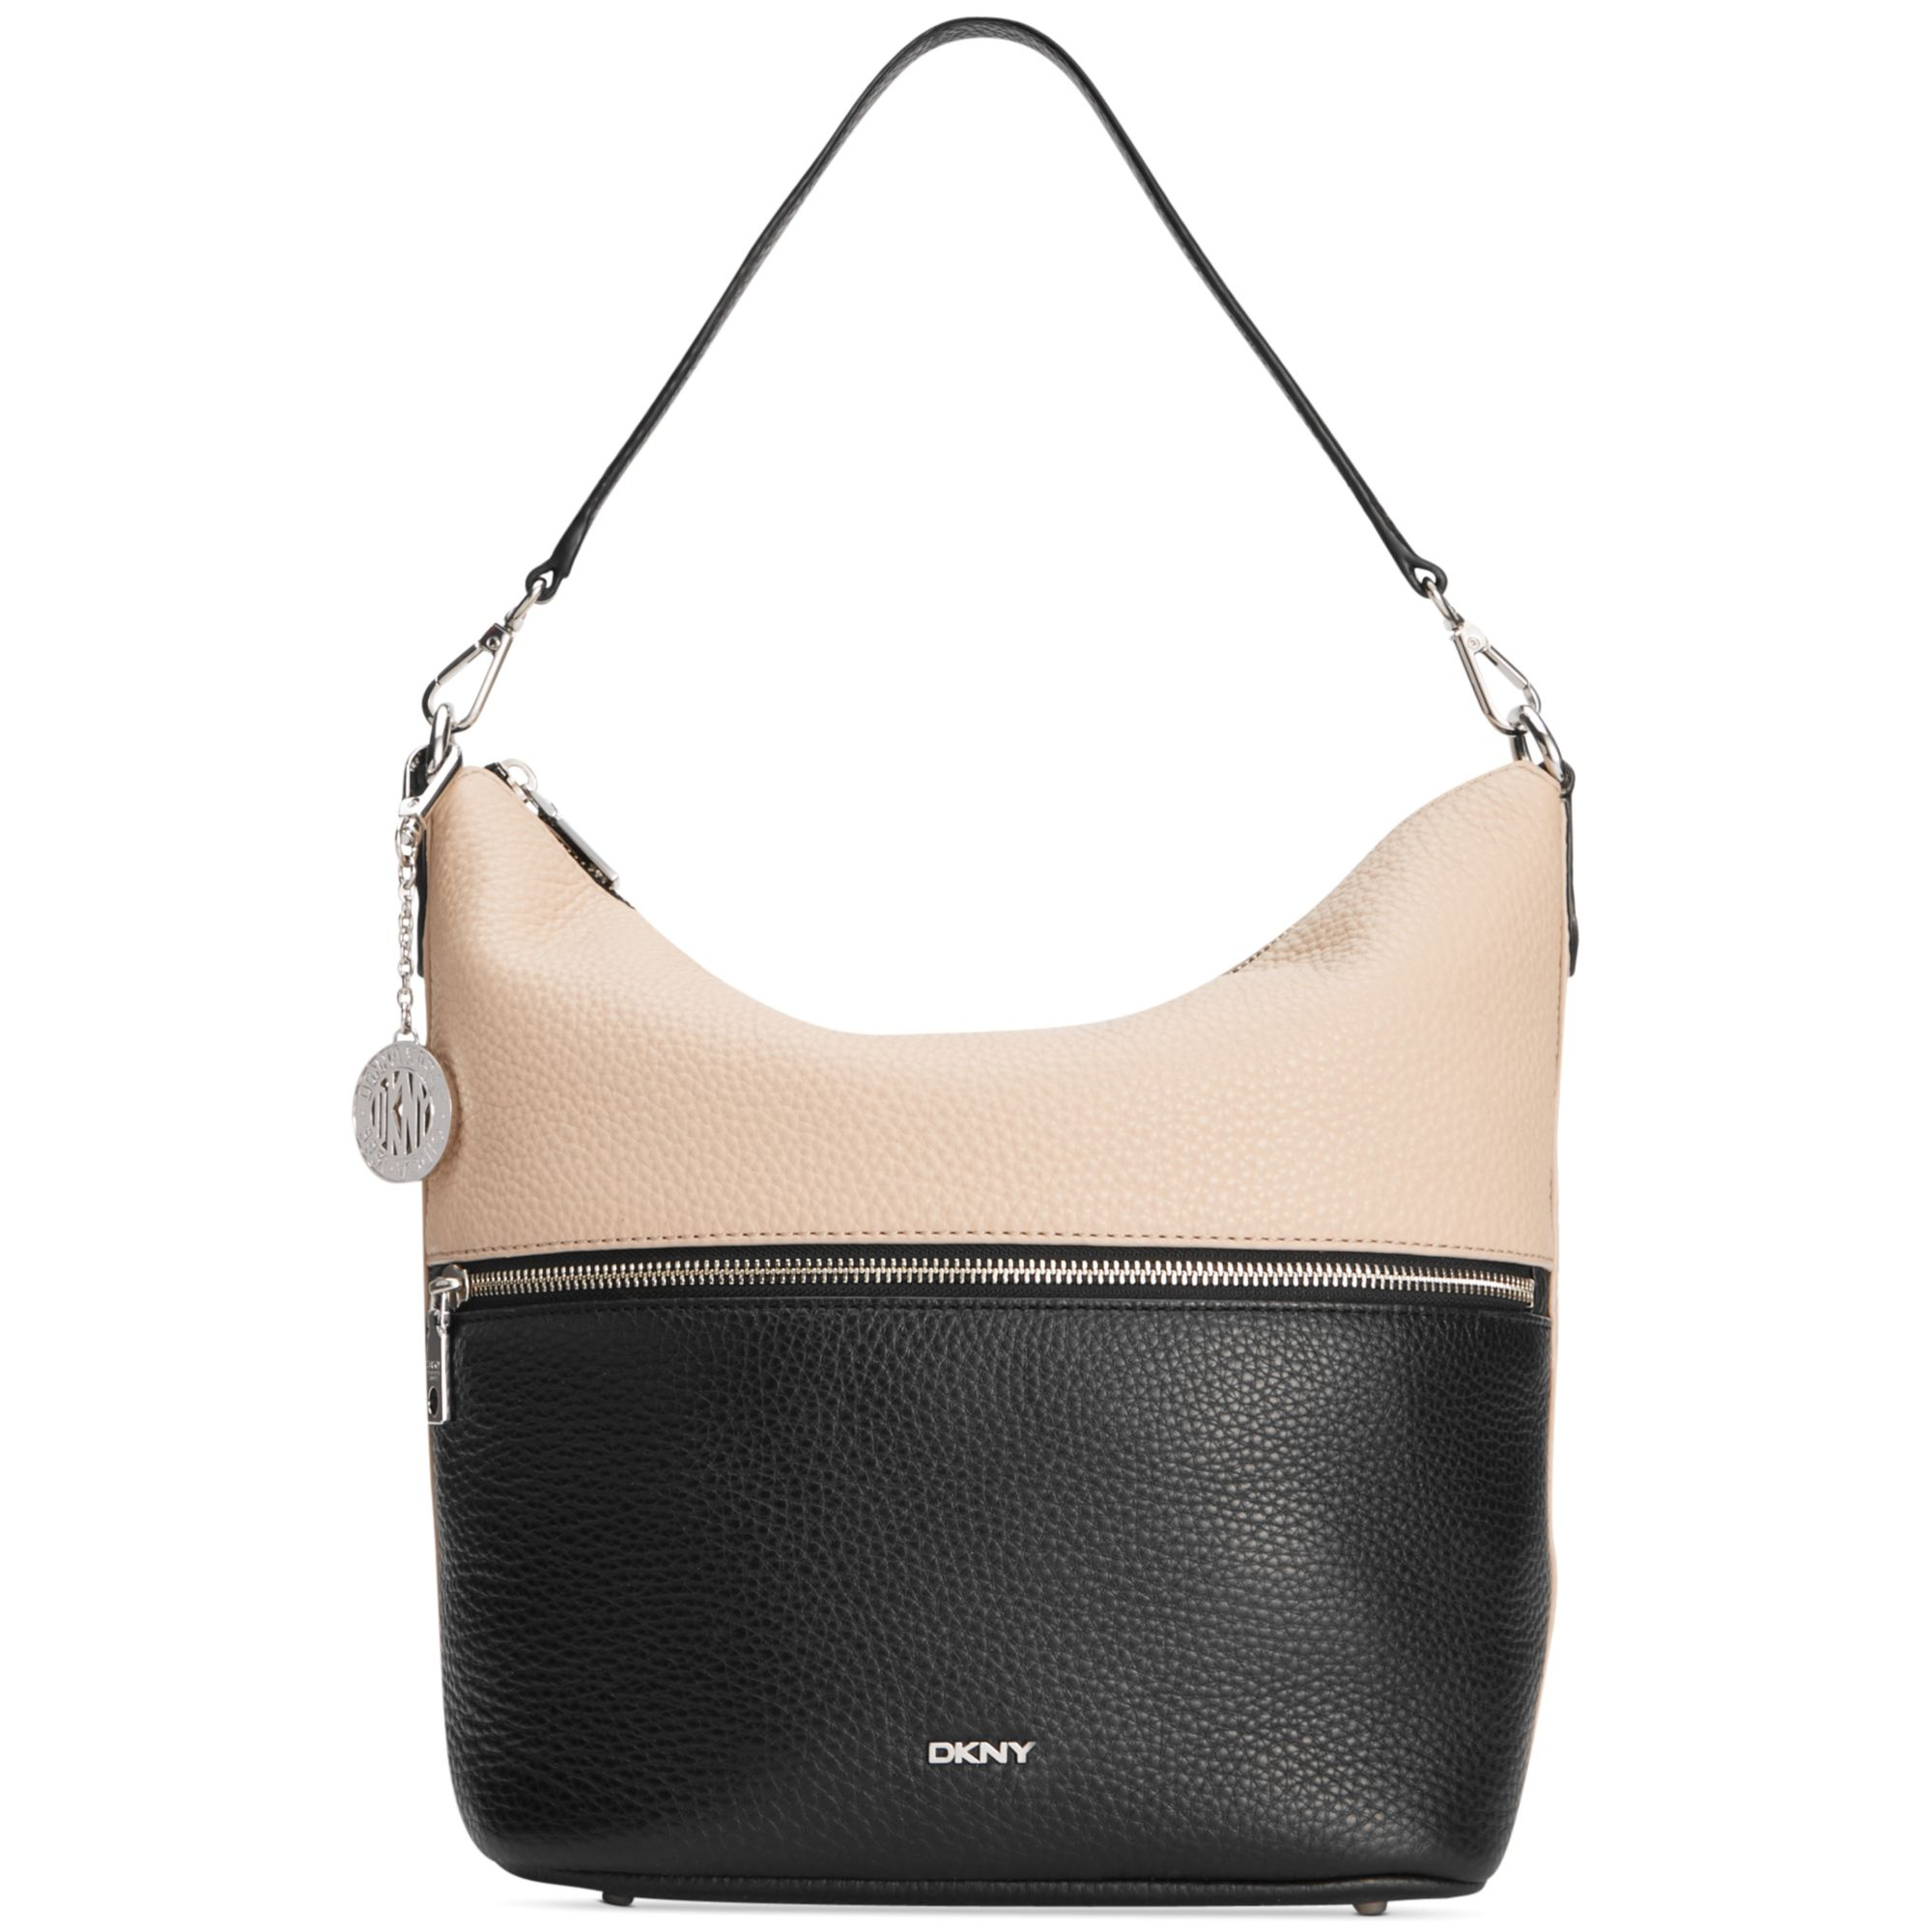 7eaf695f5e82 Lyst - Dkny Tribeca Bucket Hobo in Black